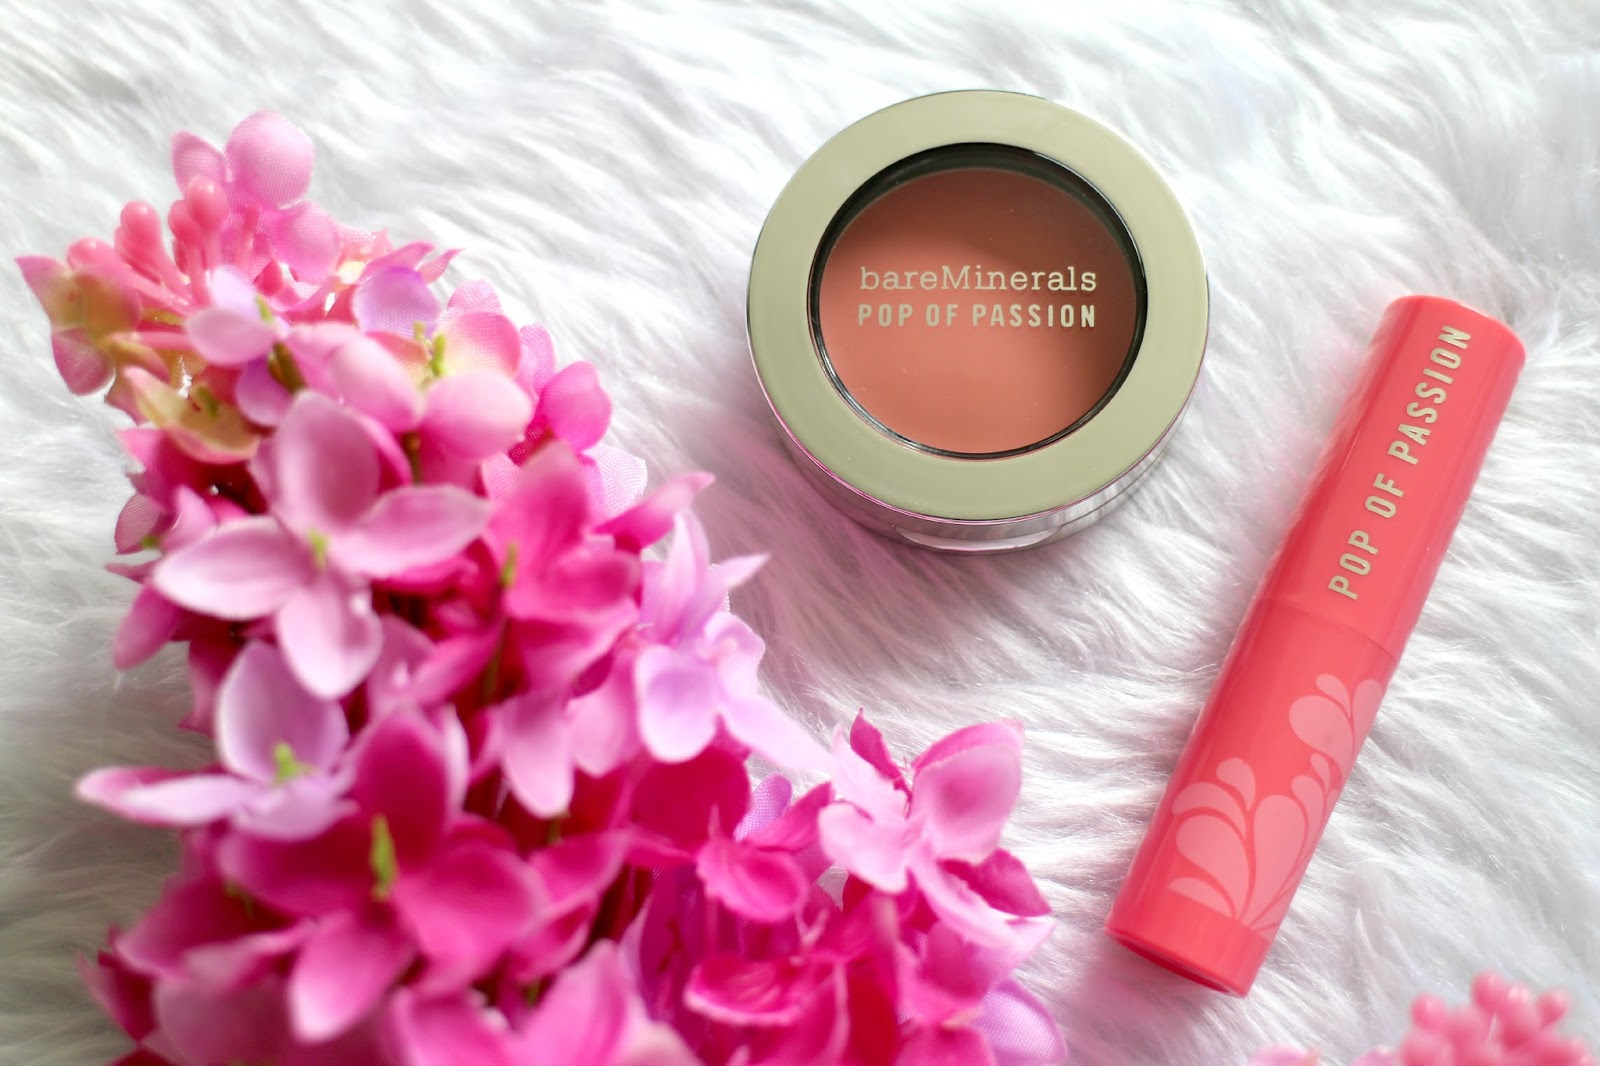 bareMinerals Pop Of Passion